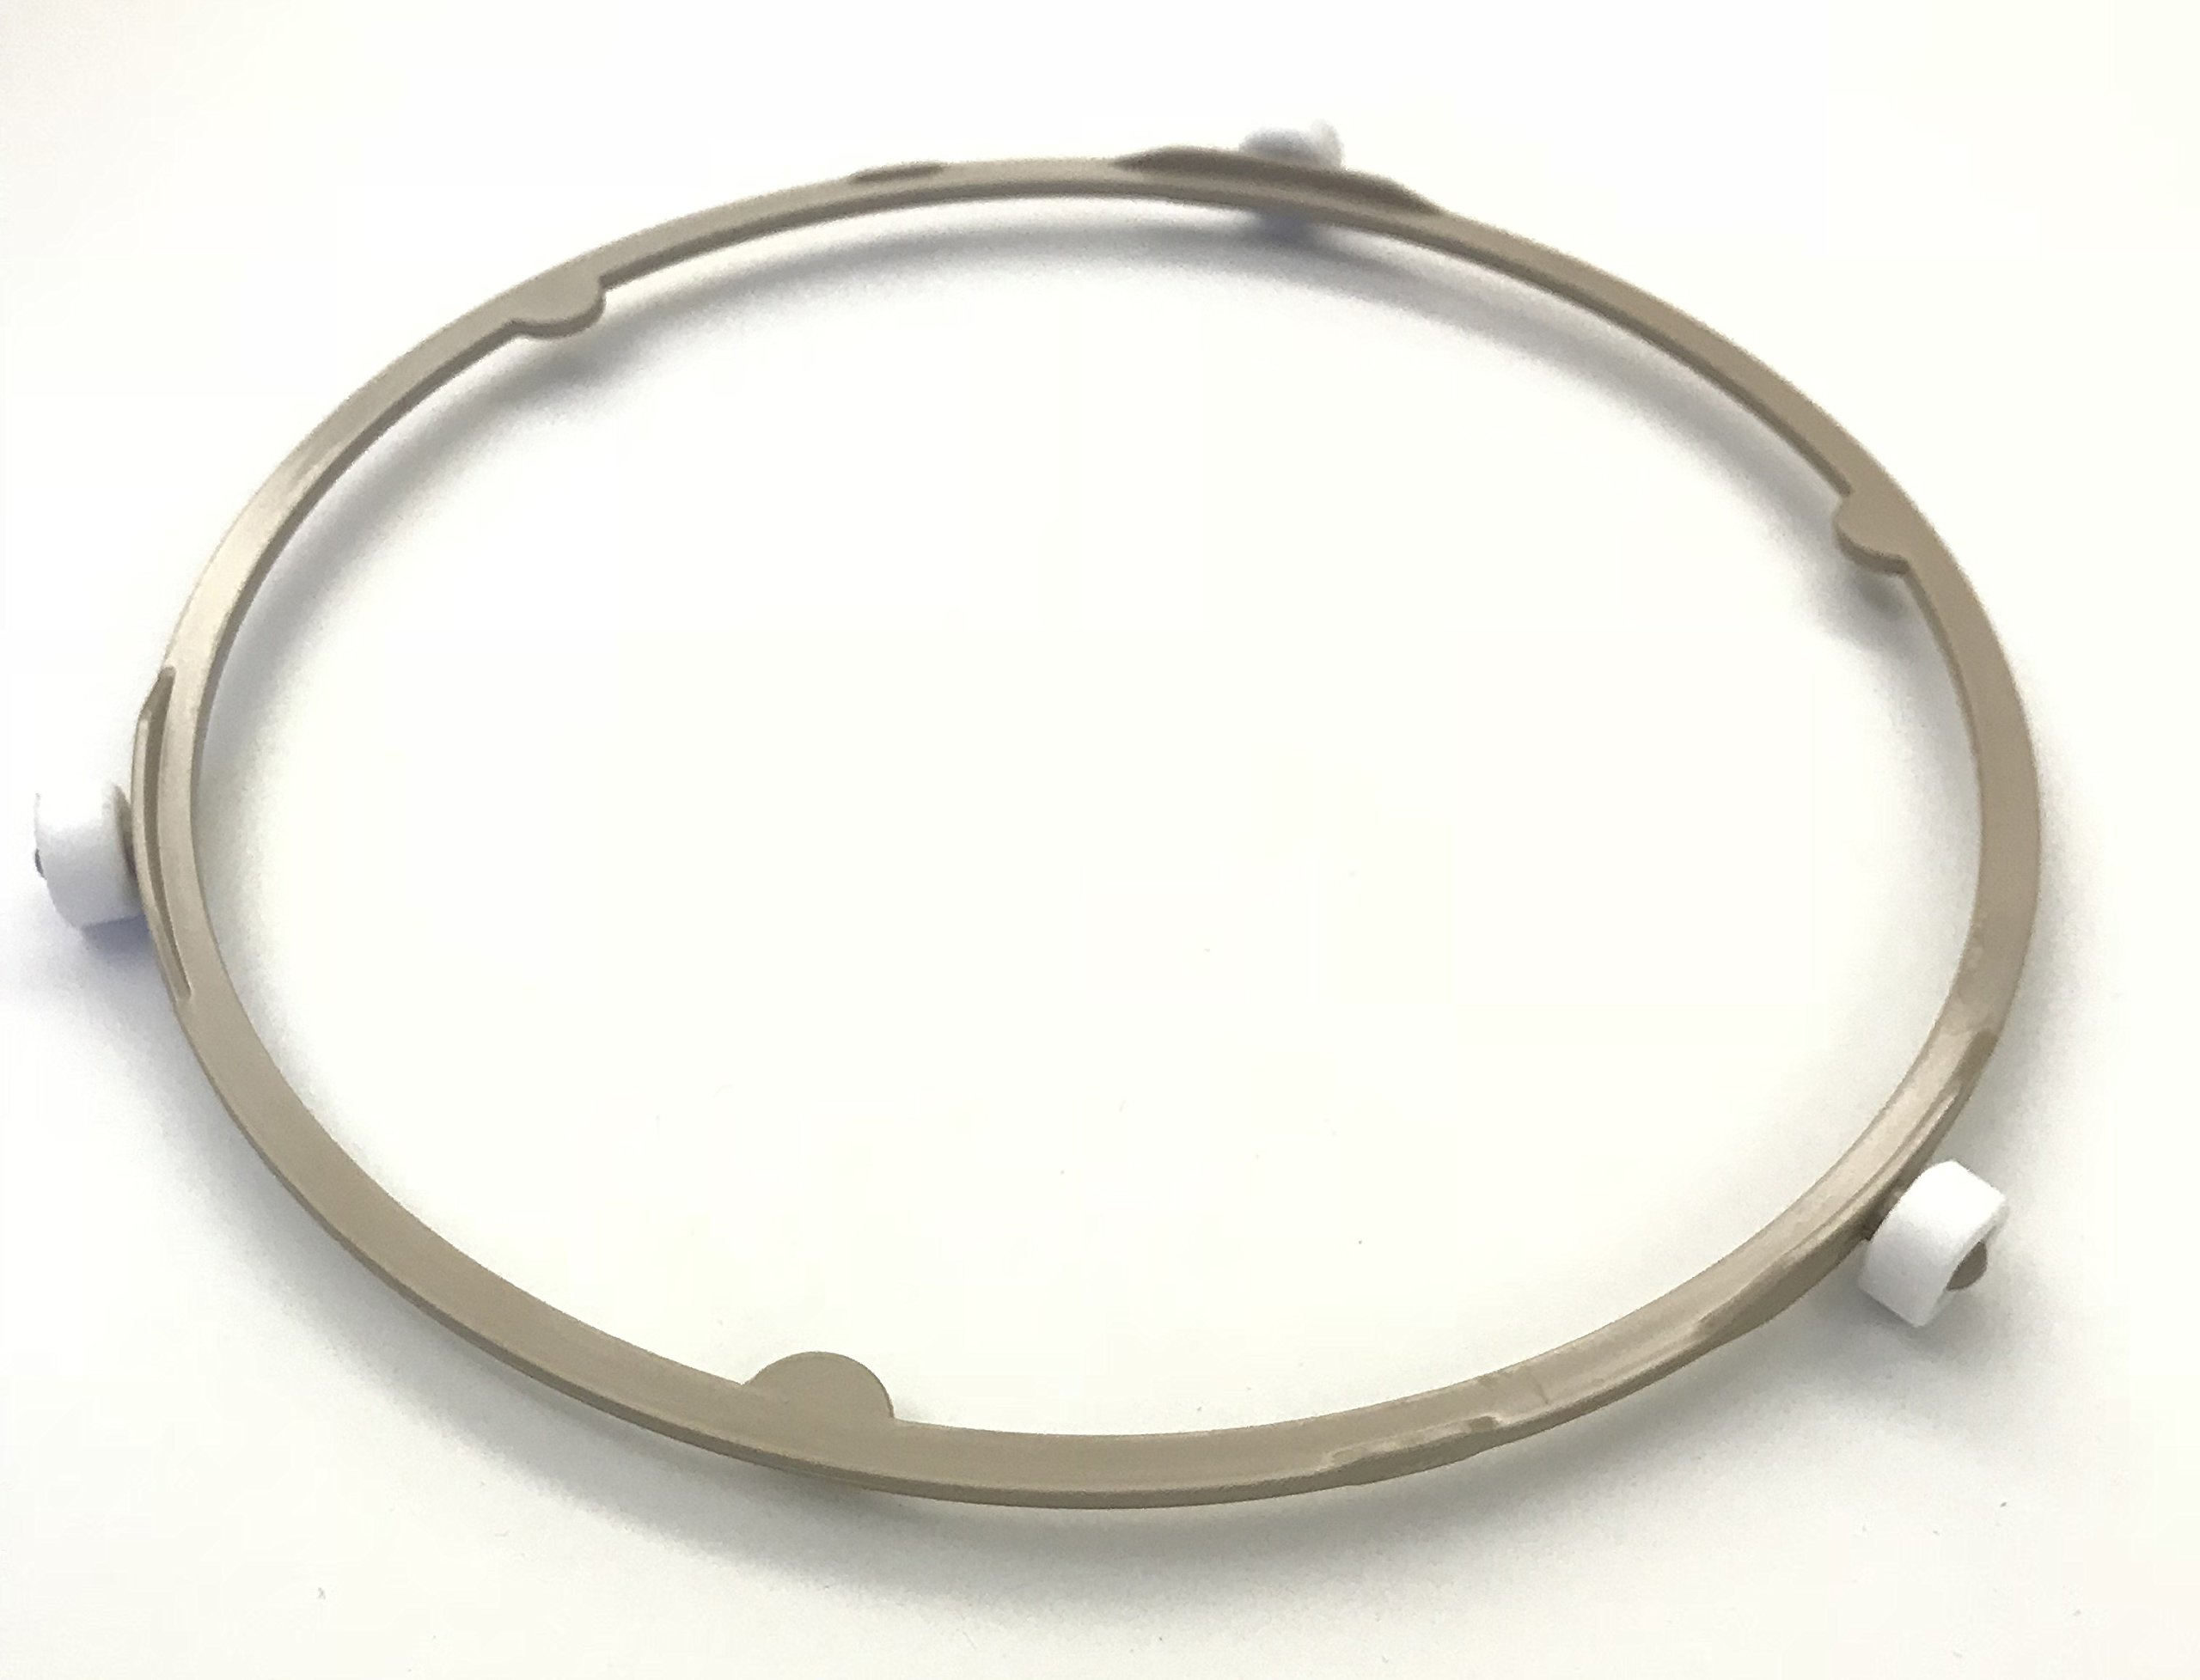 OEM Samsung Microwave Roller Ring For Samsung ME16H702SEB, ME16H702SEB/AA, ME16H702SEB/AC, ME16H702SES, ME16H702SES/AA, ME16H702SES/AC